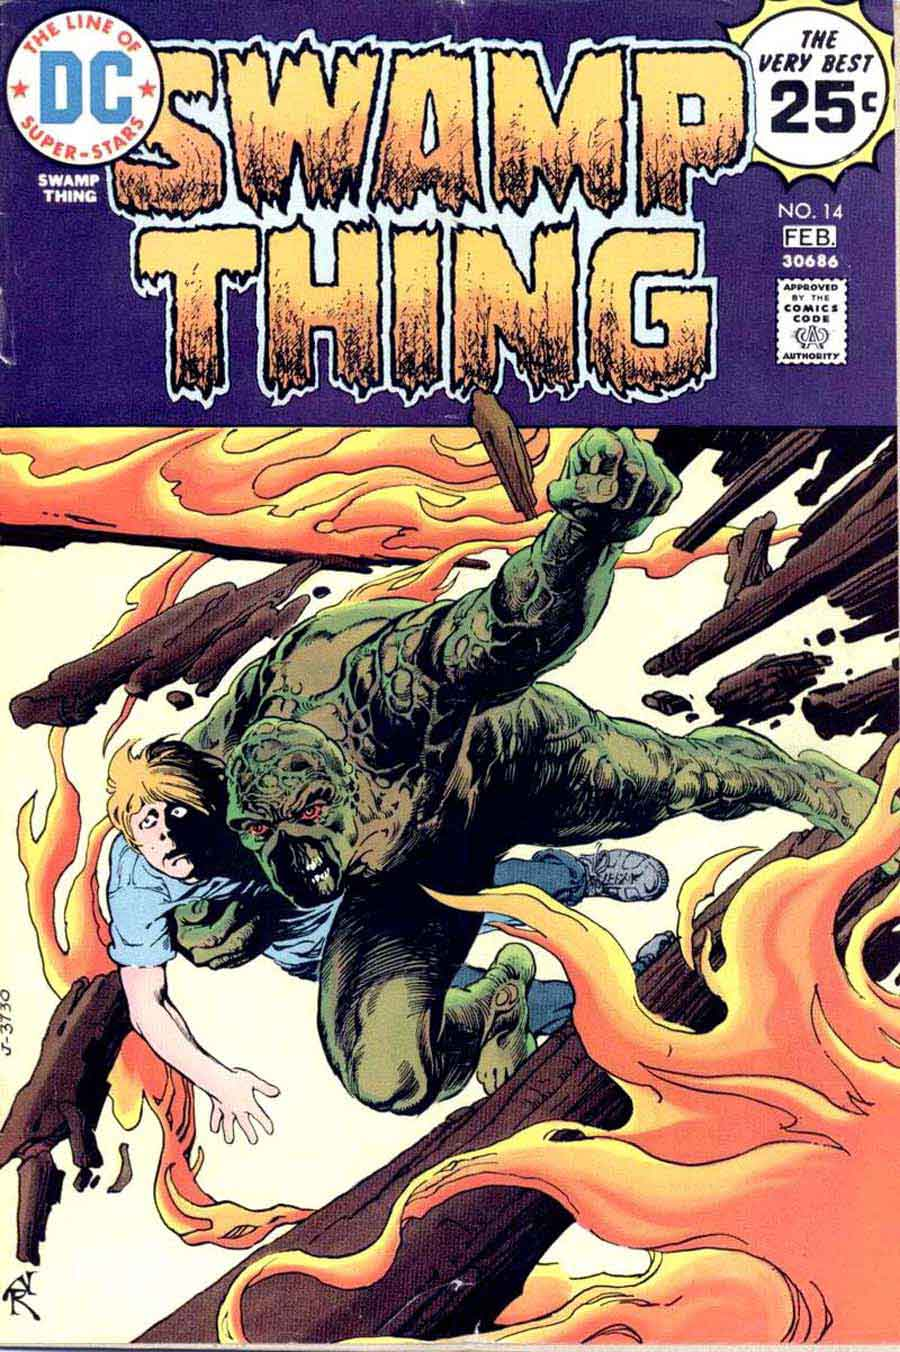 Swamp Thing v1 #14 1970s bronze age dc comic book cover art by Nestor Redondo